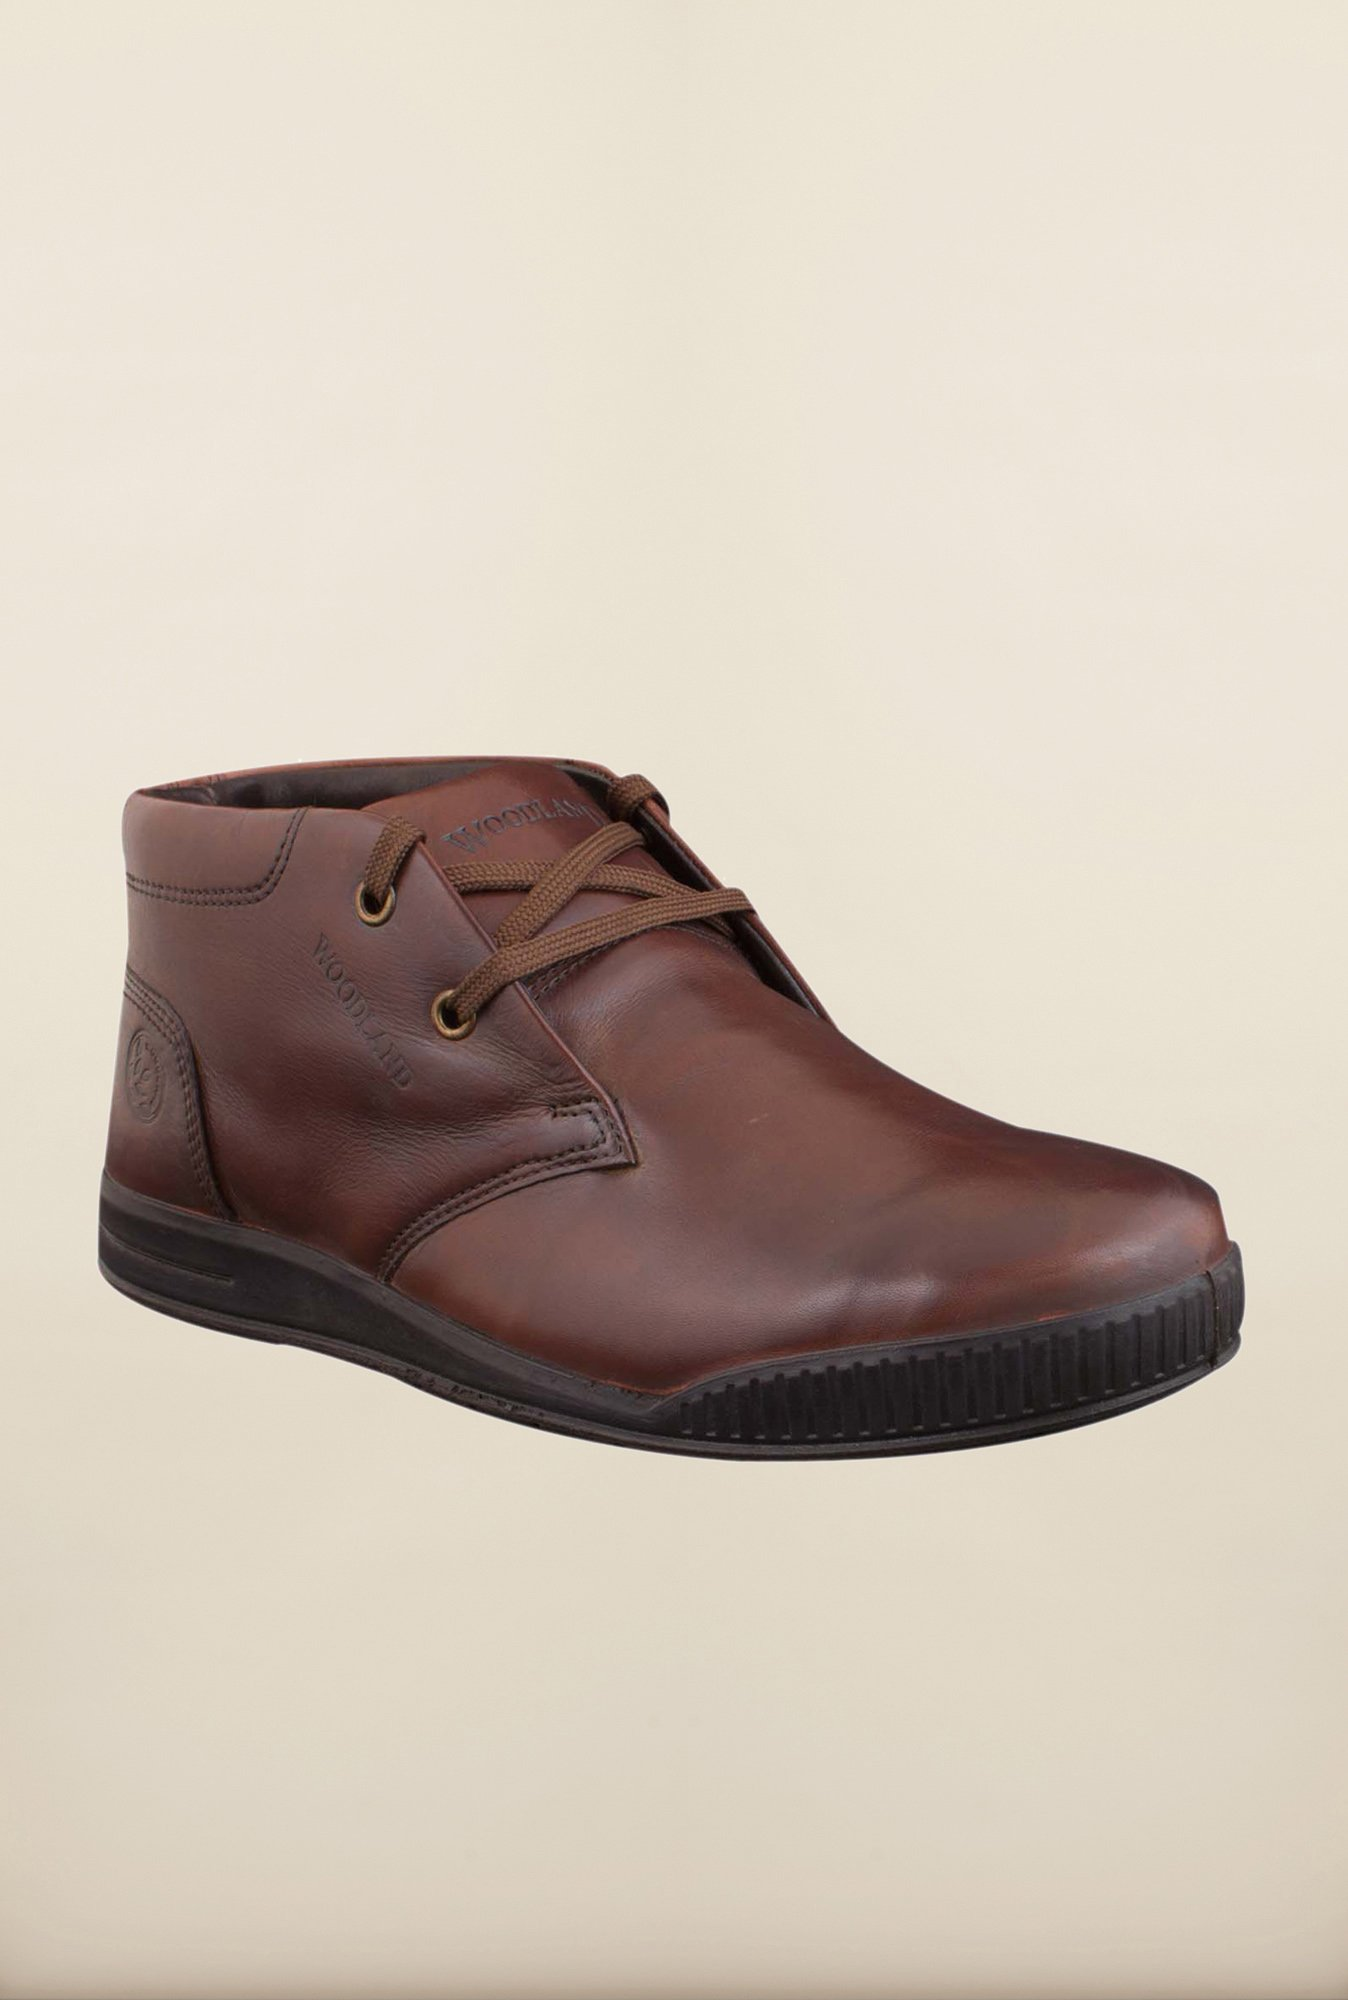 Woodland Brown Ankle High Chukka Boots